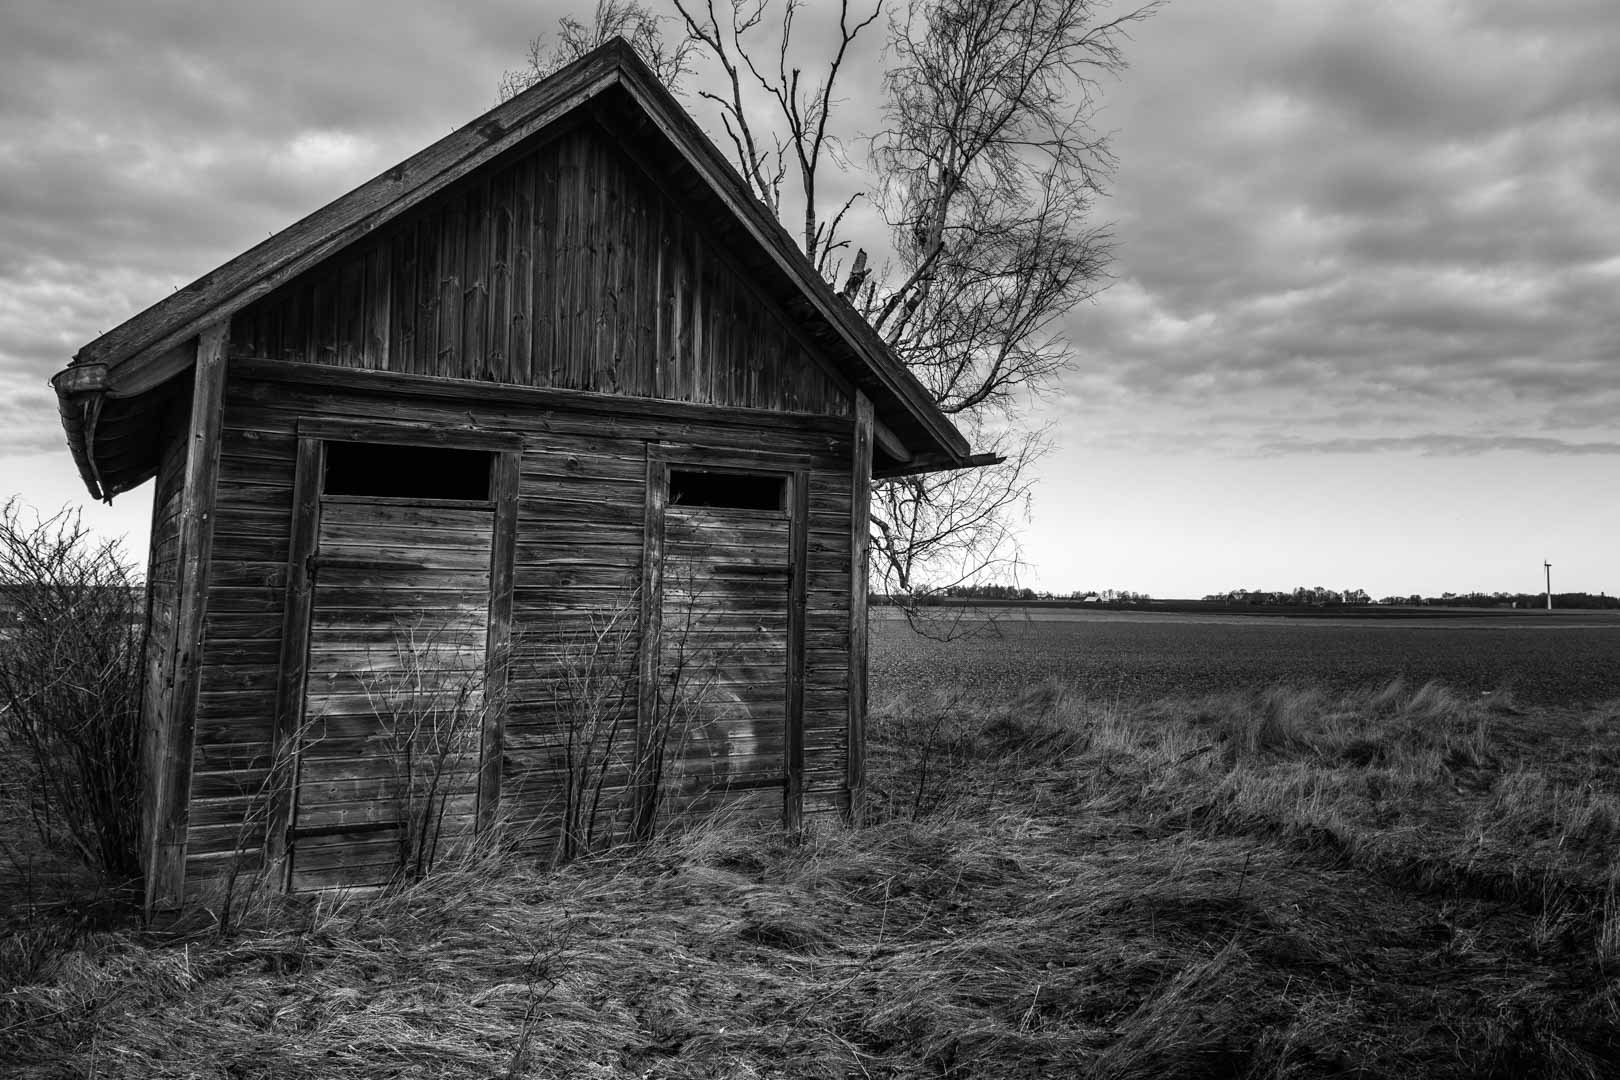 Canon 6D, Canon EF 24-105 f4 -> 1/200 sek, f6,3, ISO 100, 24mm